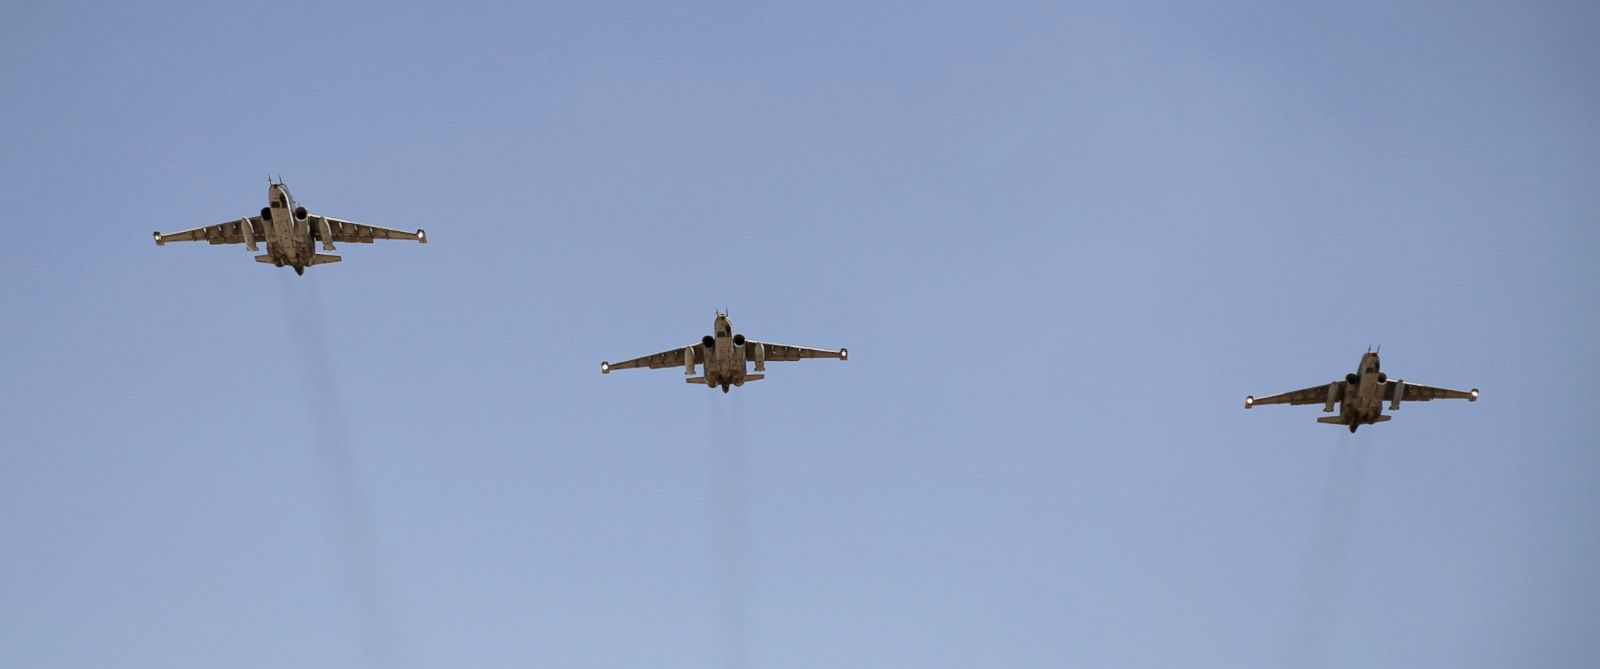 PHOTO: Two Ukrainian Sukhoi SU-25 fighter jets were shot down today, the Ukrainiain defense ministry says. In this file photo, Sukhoi SU-25 planes fly over a Bagdhad airport earlier this month.